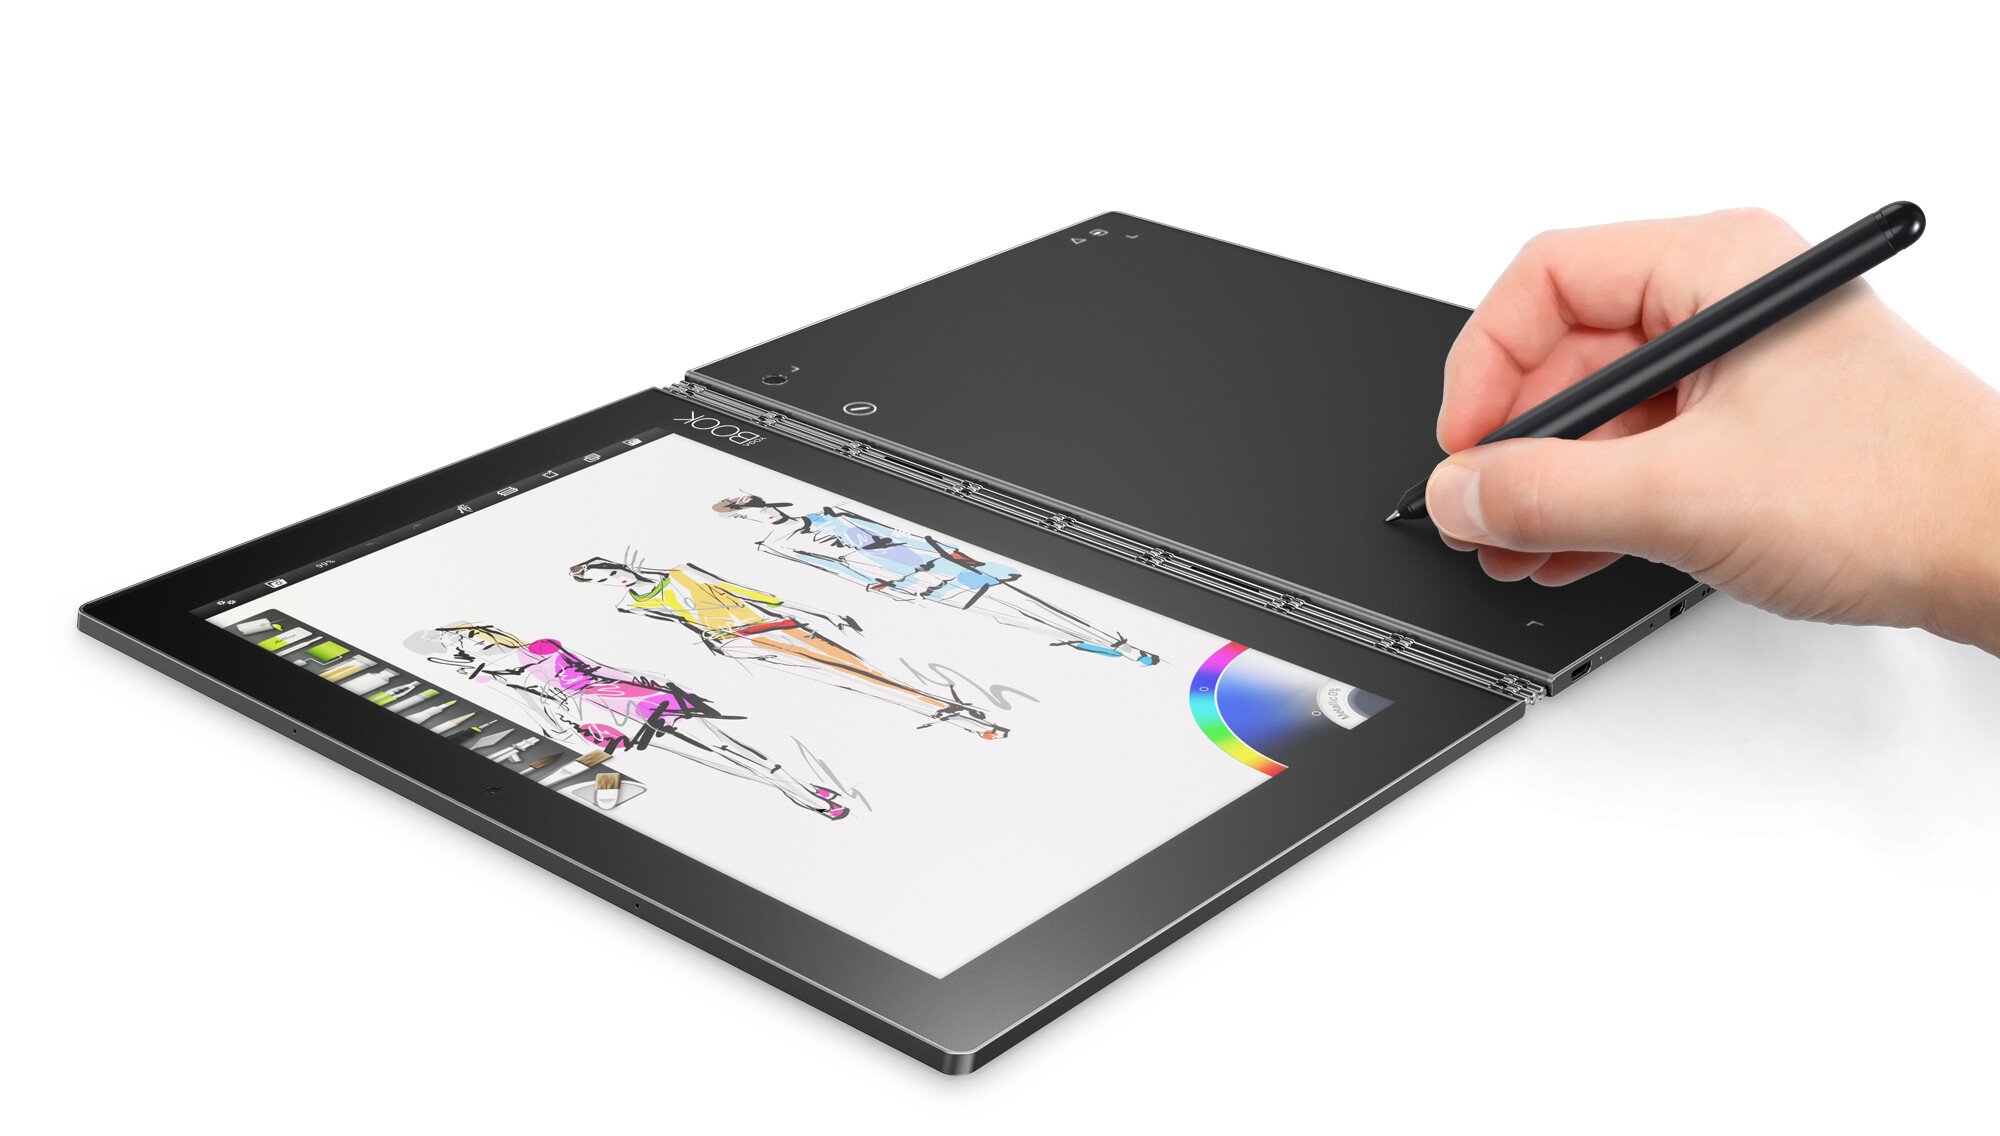 The Lenovo Yoga Book Is A 2 In 1 Tablet That Aims To Cater